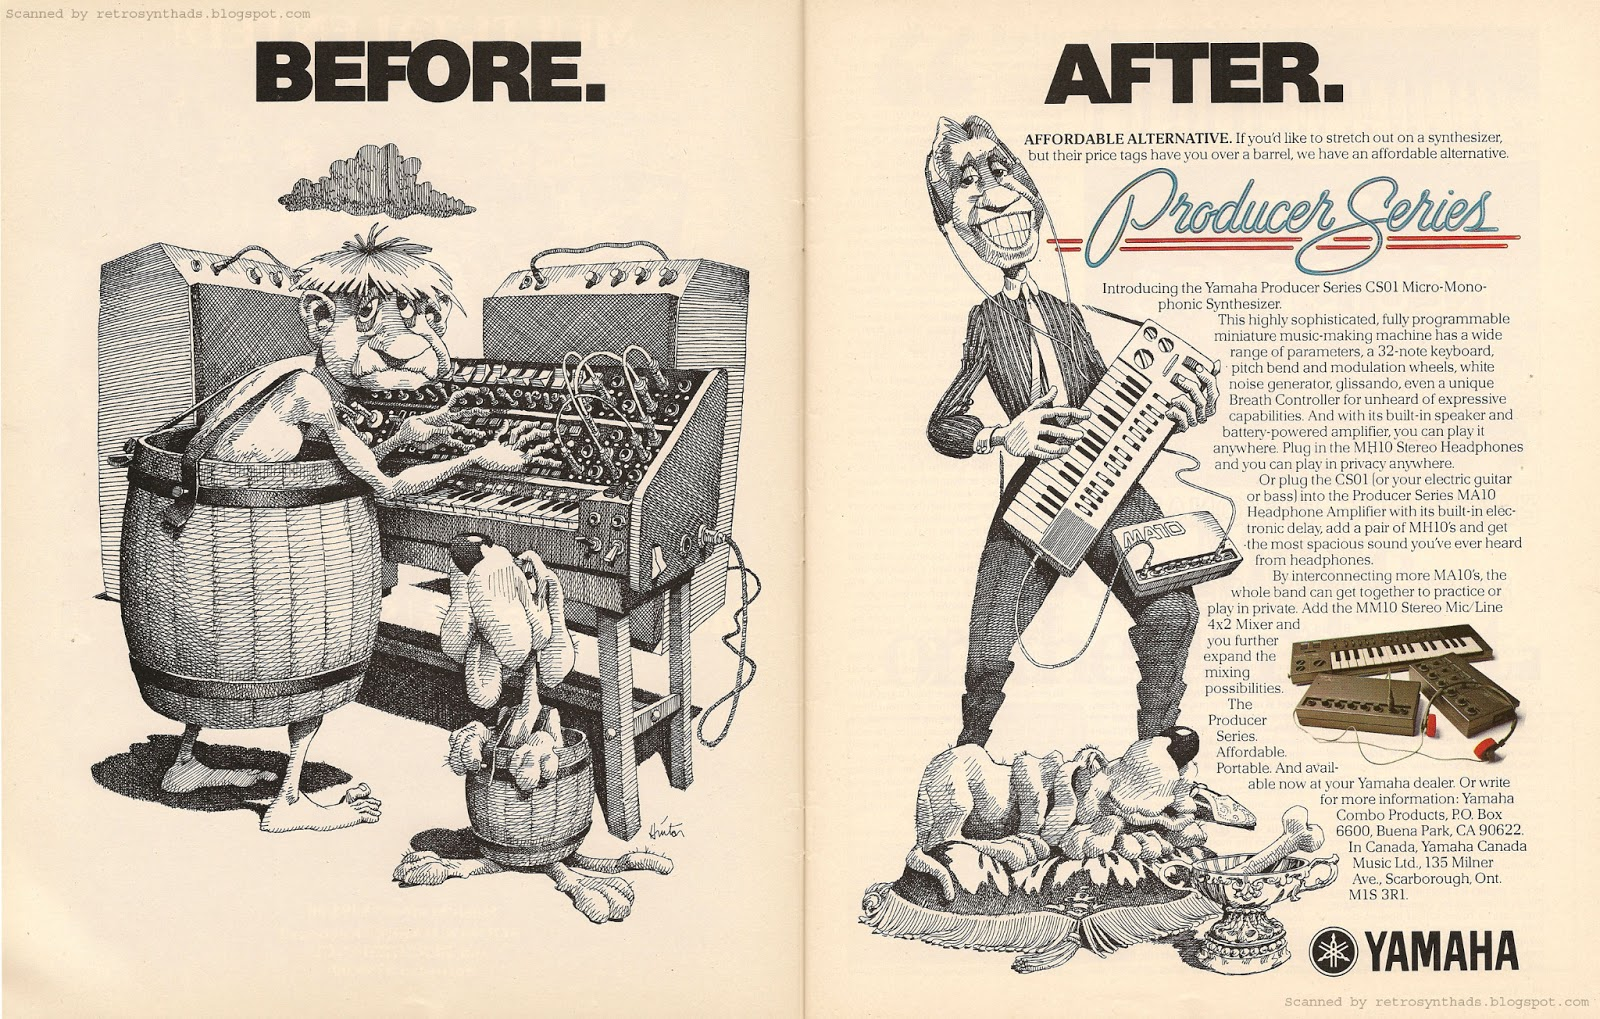 Series quot before after affordable alternative quot ad keyboard 1982